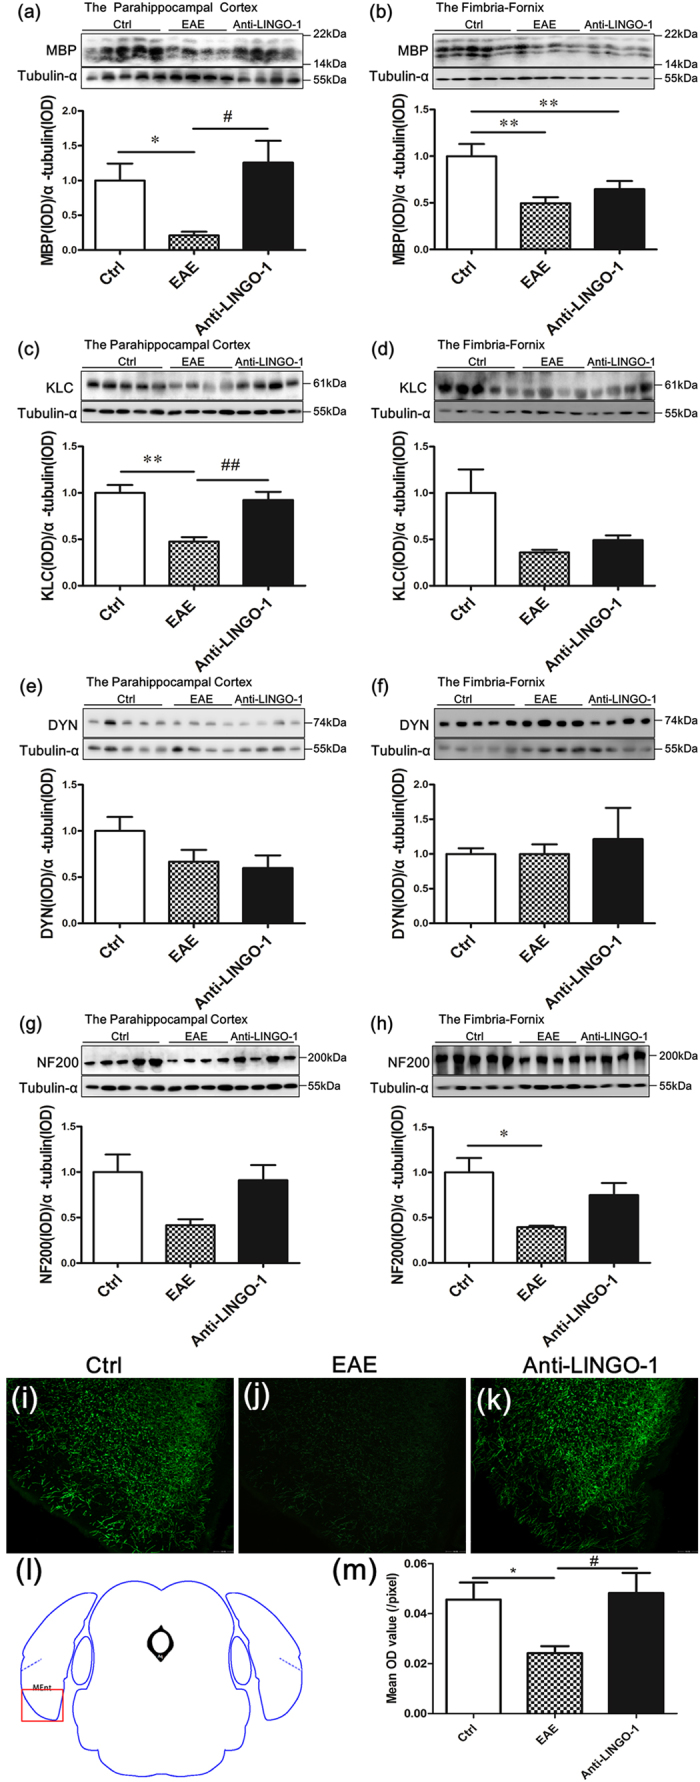 LINGO-1 antibody promotes parahippocampal cortex (PHC) remyelination in EAE mice. ( a , b ) The EAE mice exhibited demyelination in the PHC and fimbria-fornix. After a six-week treatment with the LINGO-1 antibody, the level of MBP was significantly increased in the PHC, but no significant change was observed in the fimbria-fornix. ( c ) We found a severe reduction in the expression of kinesin light chain (KLC), in the PHC of the EAE mice compared with controls, and the KLC expression was restored in the anti-LINGO-1 treated mice. ( e )No significant differences were found for dynein (DYN), in the PHC of the EAE mice and the LINGO-1 antibody treated mice. ( g ) A reduction in the expression of neurofilament 200 (NF200), was detected in the EAE mice, and a slight increase was observed in the LINGO-1 antibody-treated mice. ( d , h ) KLC/NF200 expression was also decreased in the fimbria-fornix of the EAE but was not restored to normal levels in the EAE mice treated with the LINGO-1 antibody. ( f ) There was no significant difference in the expression of DYN among the three groups of mice. ( i – k ) Immunohistochemical staining for MBP in the three groups ( l ) Medial entorhinal cortex (MEnt) is an important subregion of the parahippocampal cortex. Schematic diagram display the scope we get the image in the microscope. ( j ) One-way ANOV A with least significance difference (LSD) test was used to determine statistical significance of MBP. The mean OD value was decline in the EAE mice and after LINGO-1 treatment, it was increased. n(Ctrl) = 3, n(EAE) = 4, n(Anti-LINGO-1) = 3. *Denotes statistical significance compared with controls (P